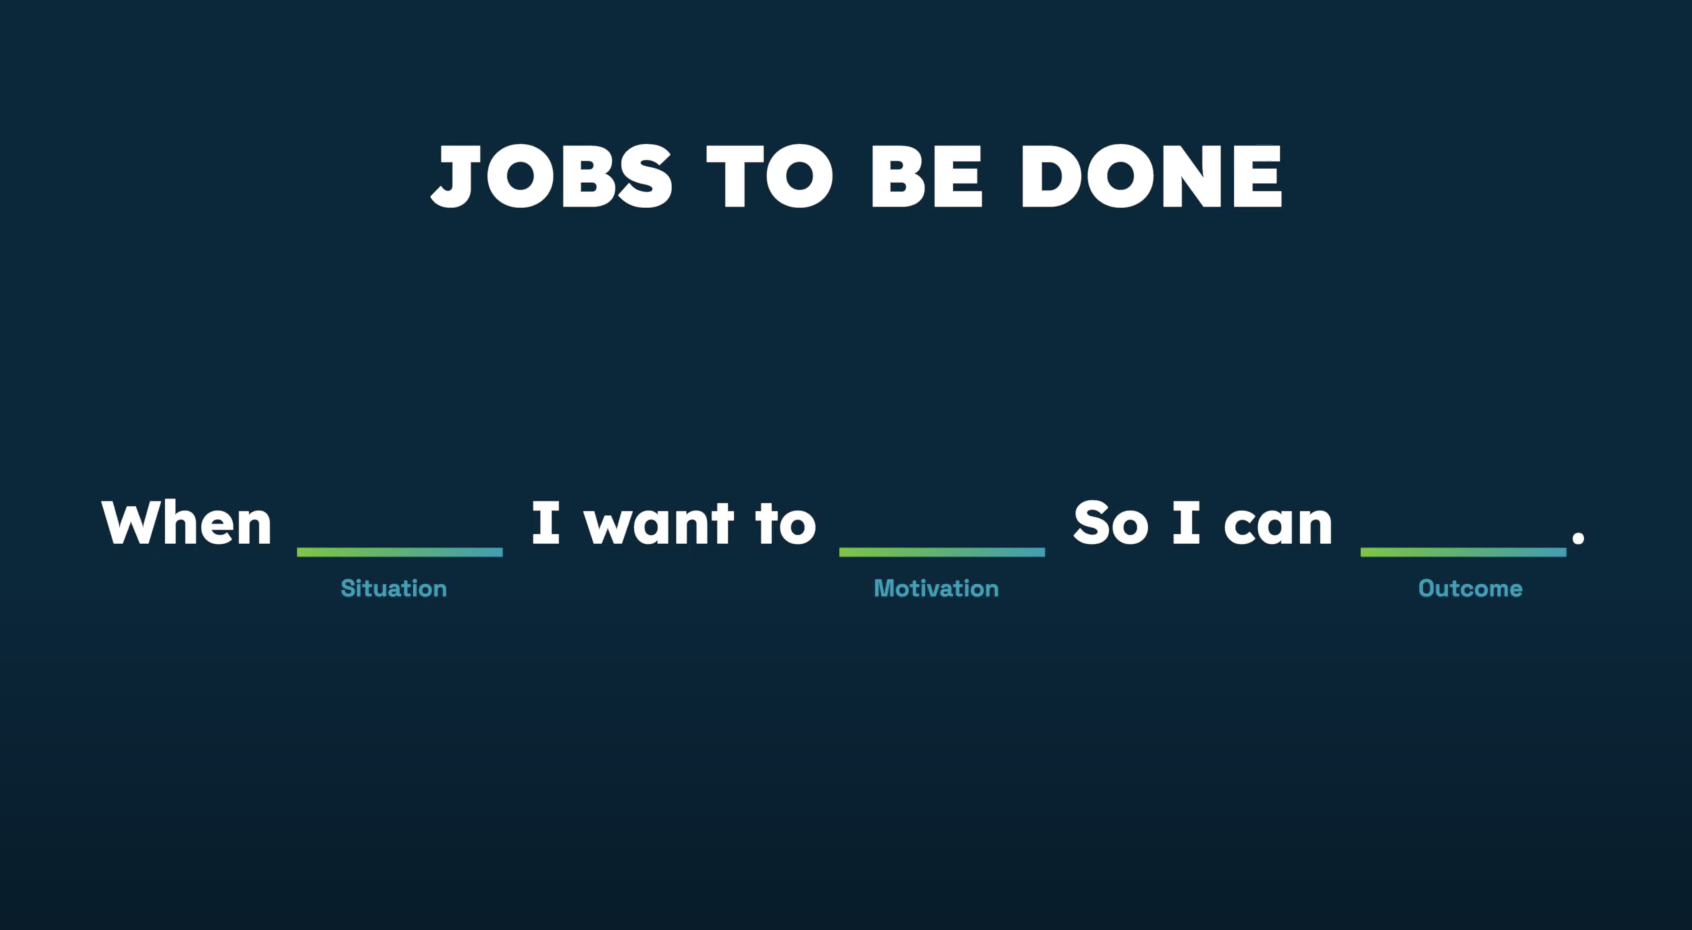 jobs_to_be_done_webinar_image